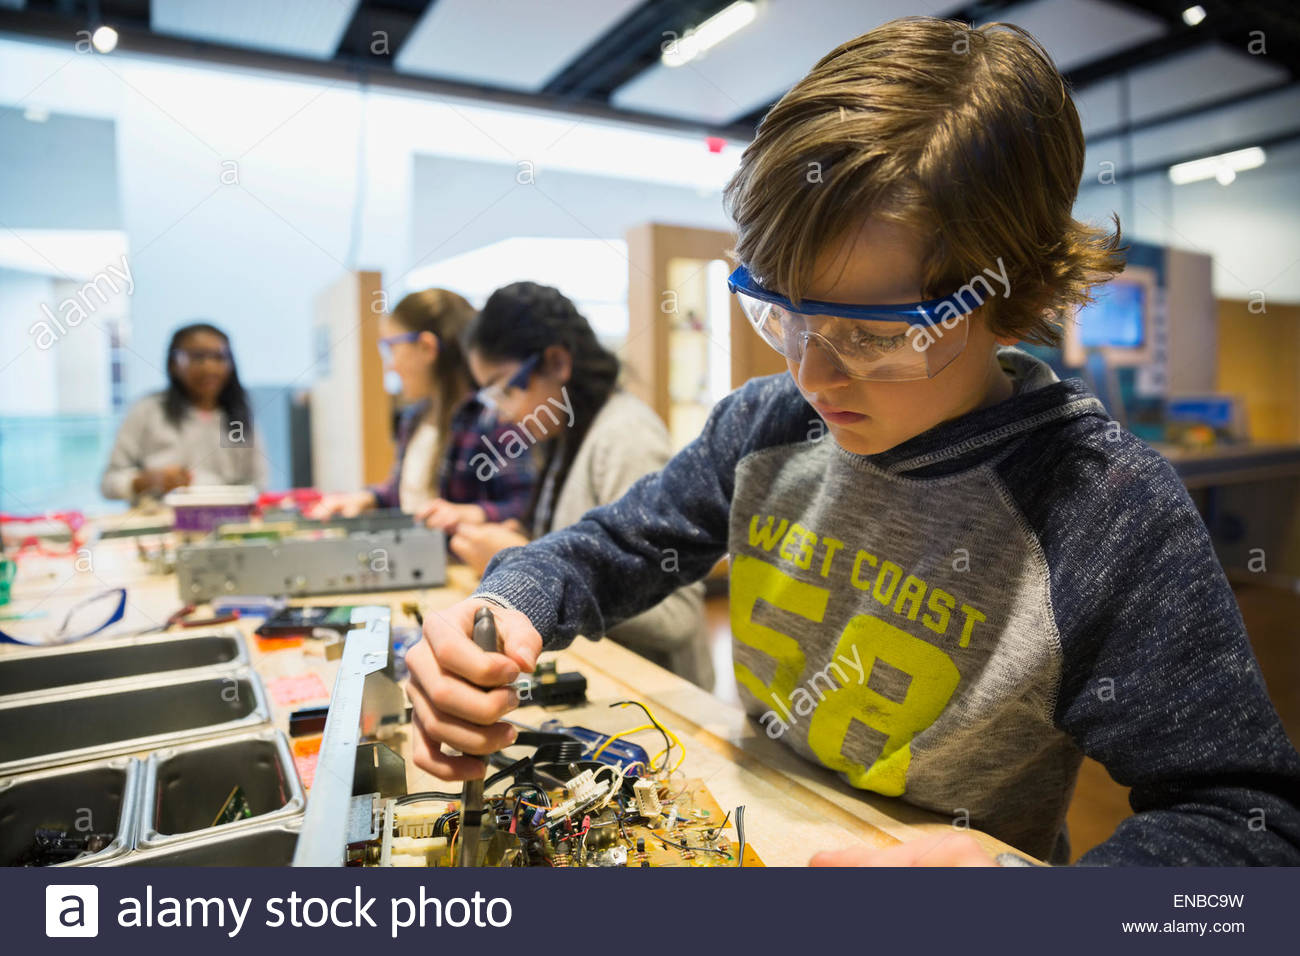 Curious boy assembling electronic circuit at science center - Stock Image